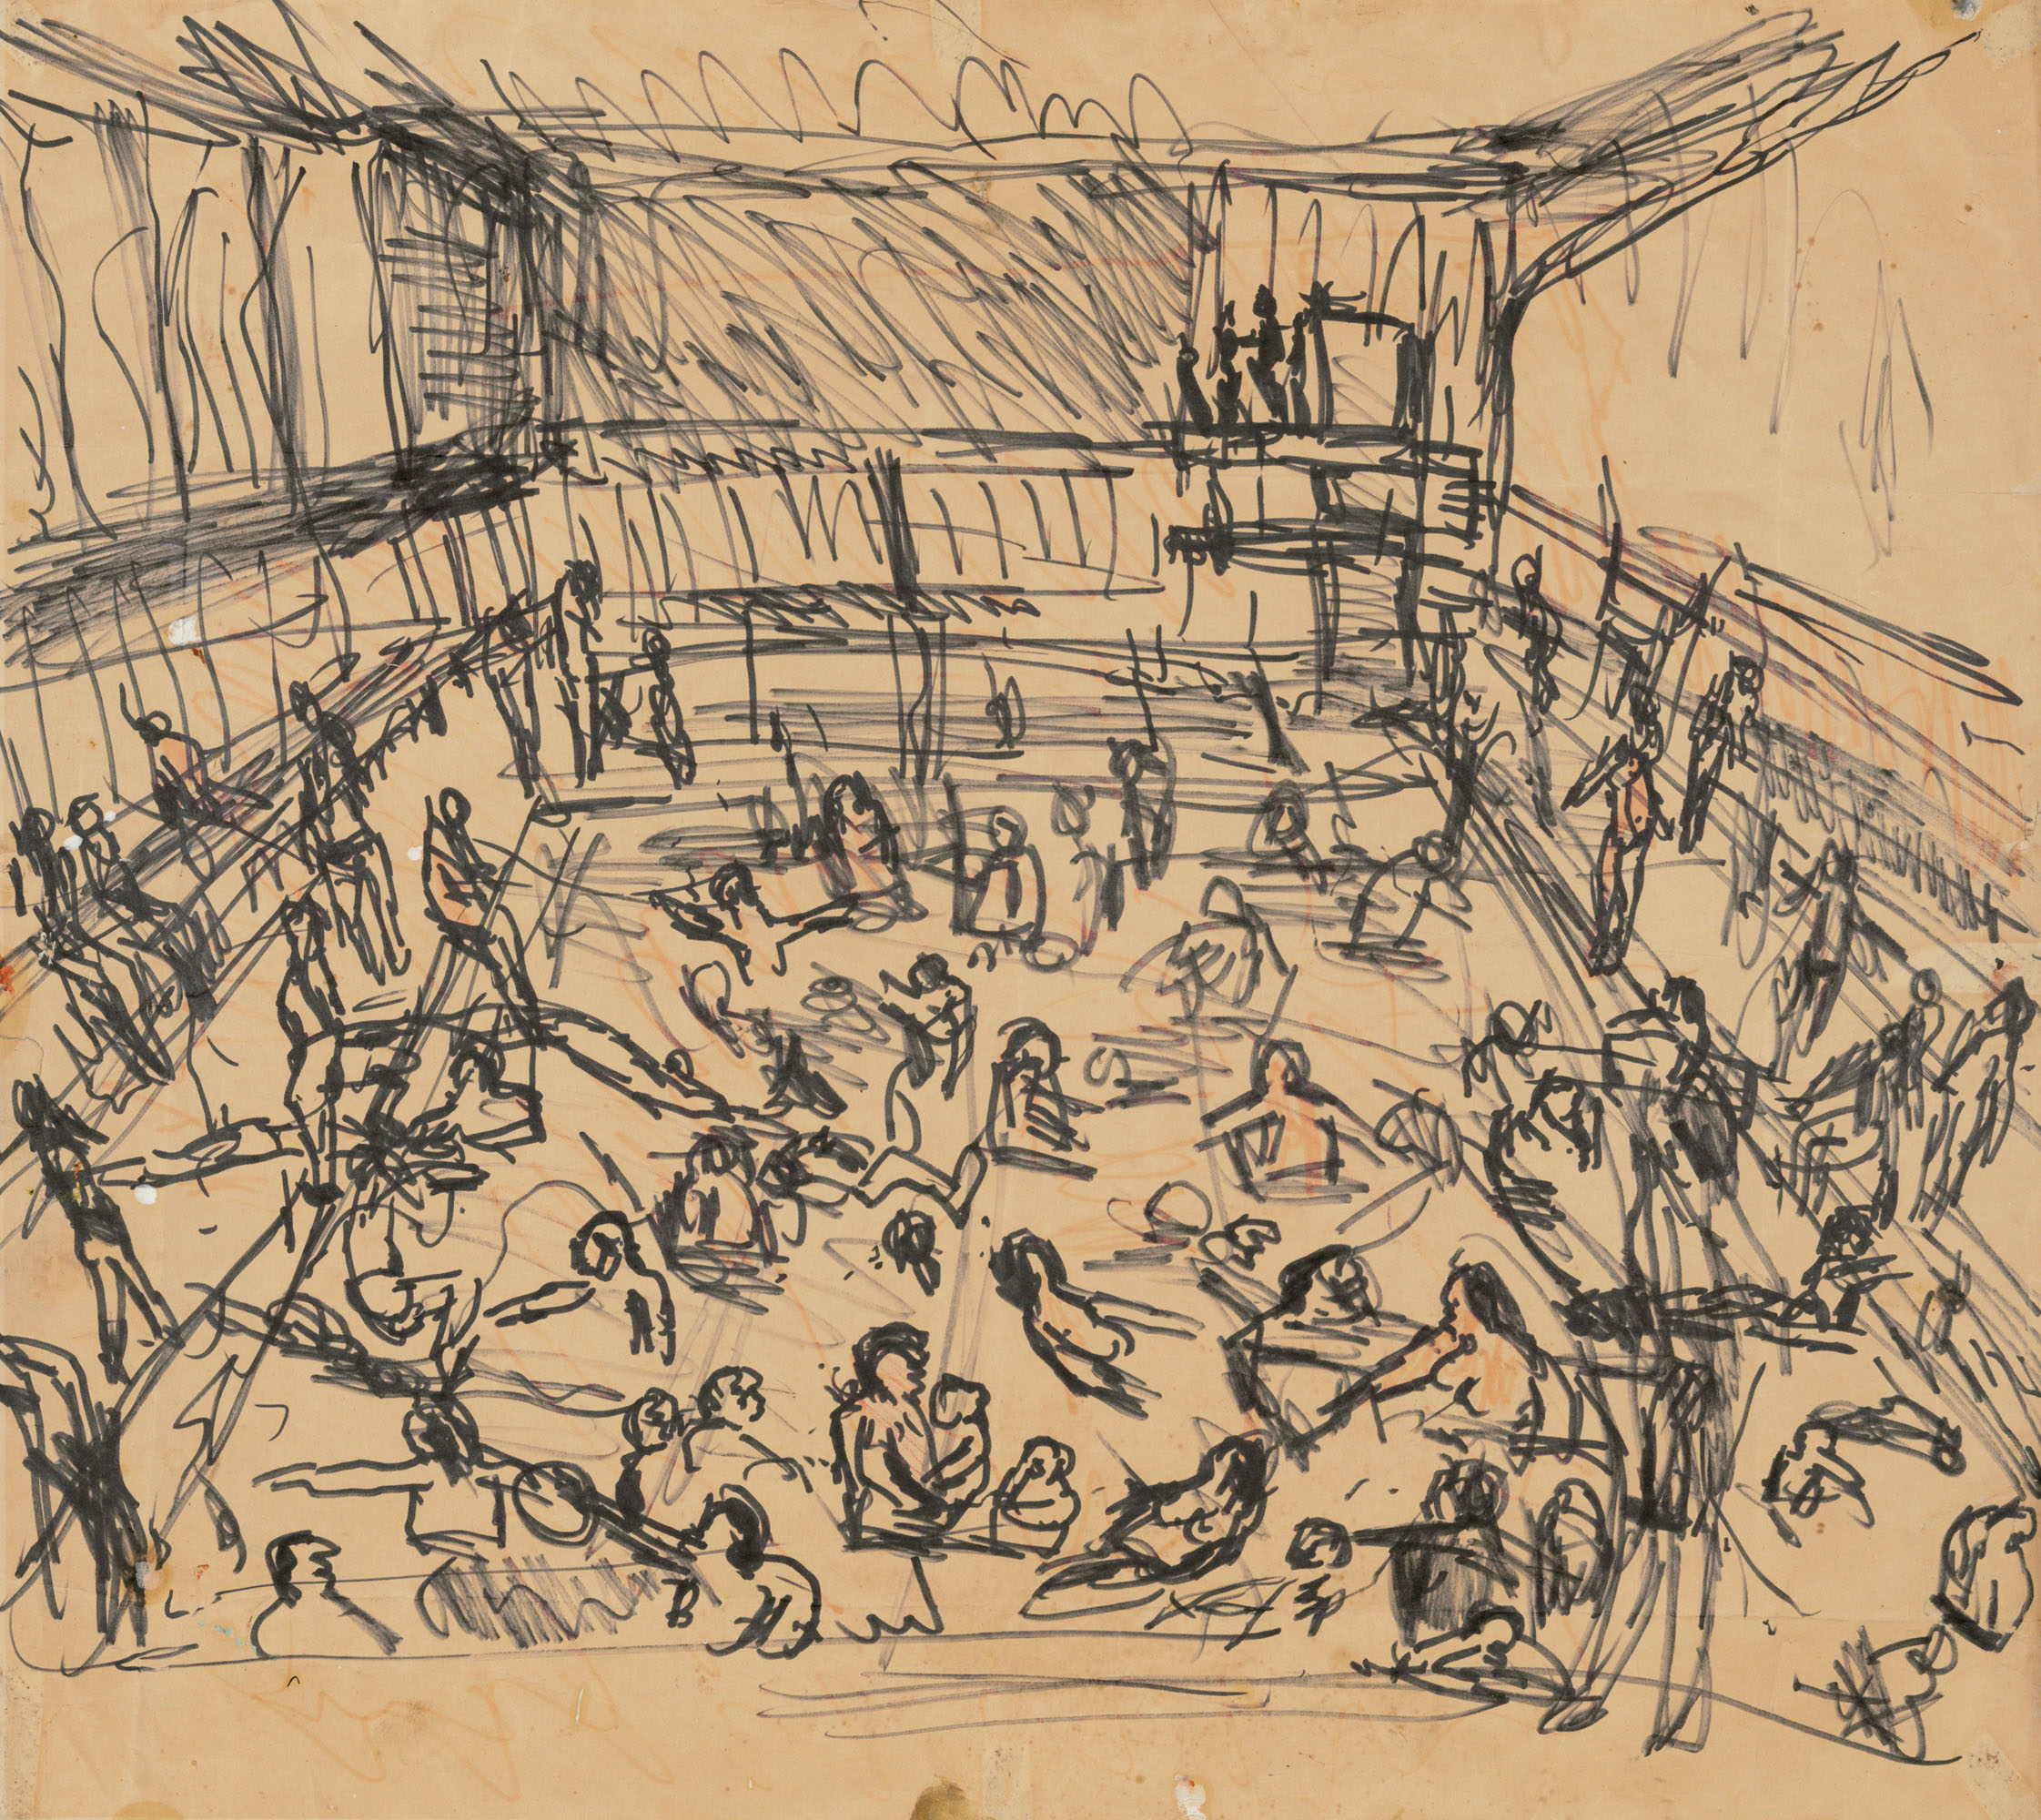 Leon Kossoff (1926-2019), Children's Swimming Pool, circa 1970-72. Felt-tip pen on paper. 23⅜ x 26 in (59.4 x 66 cm). Estimate £20,000-30,000. Offered in the Modern British Art Day Sale on 2 March 2021 at Christie's in London